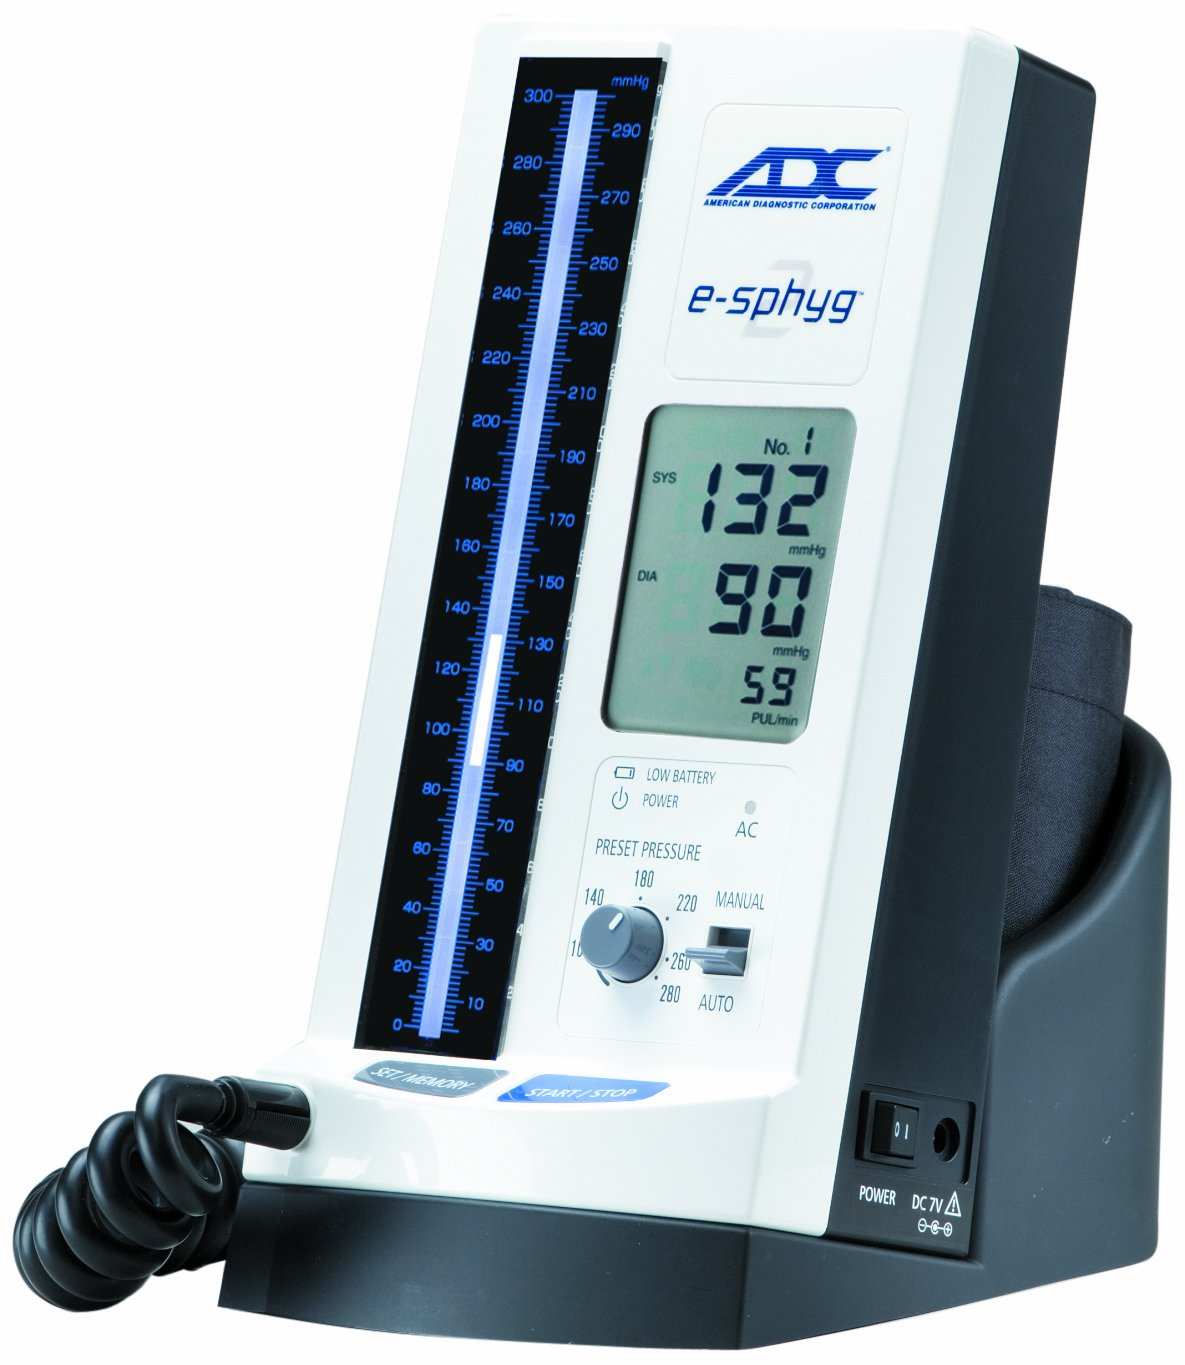 ADC 9002 e-Sphyg II Automatic NIBP Blood Pressure Monitor with Small Adult, Adult and Large Adult BP Cuffs and Desktop Stand